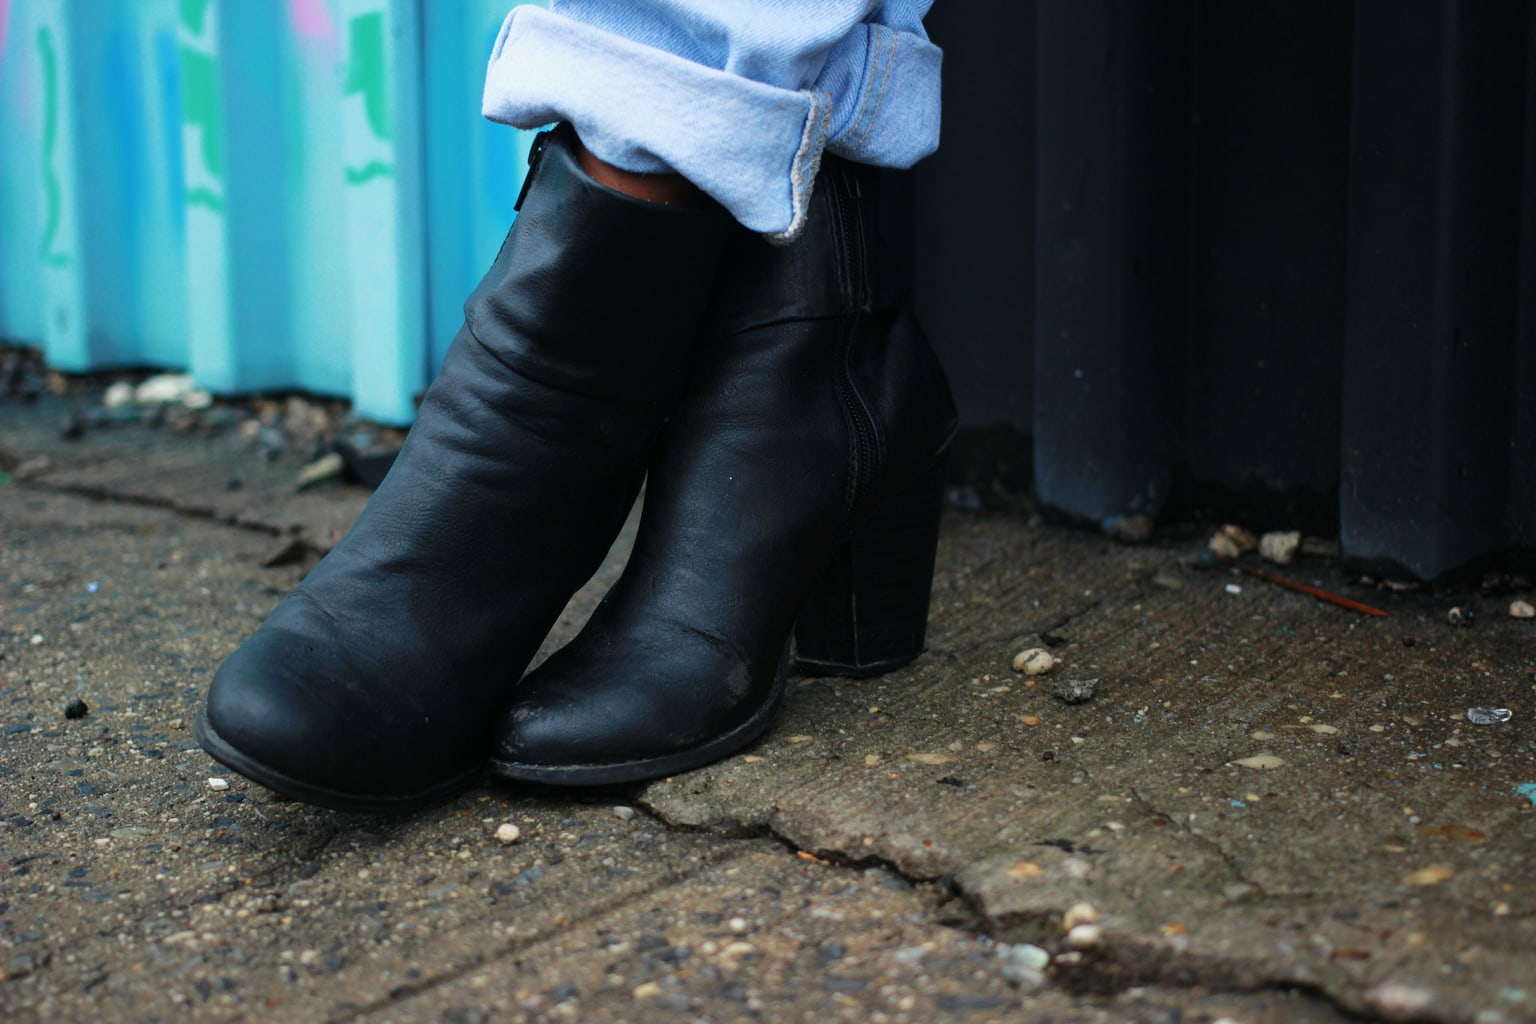 Student wears black chunky-heeled booties around campus for comfort and style.